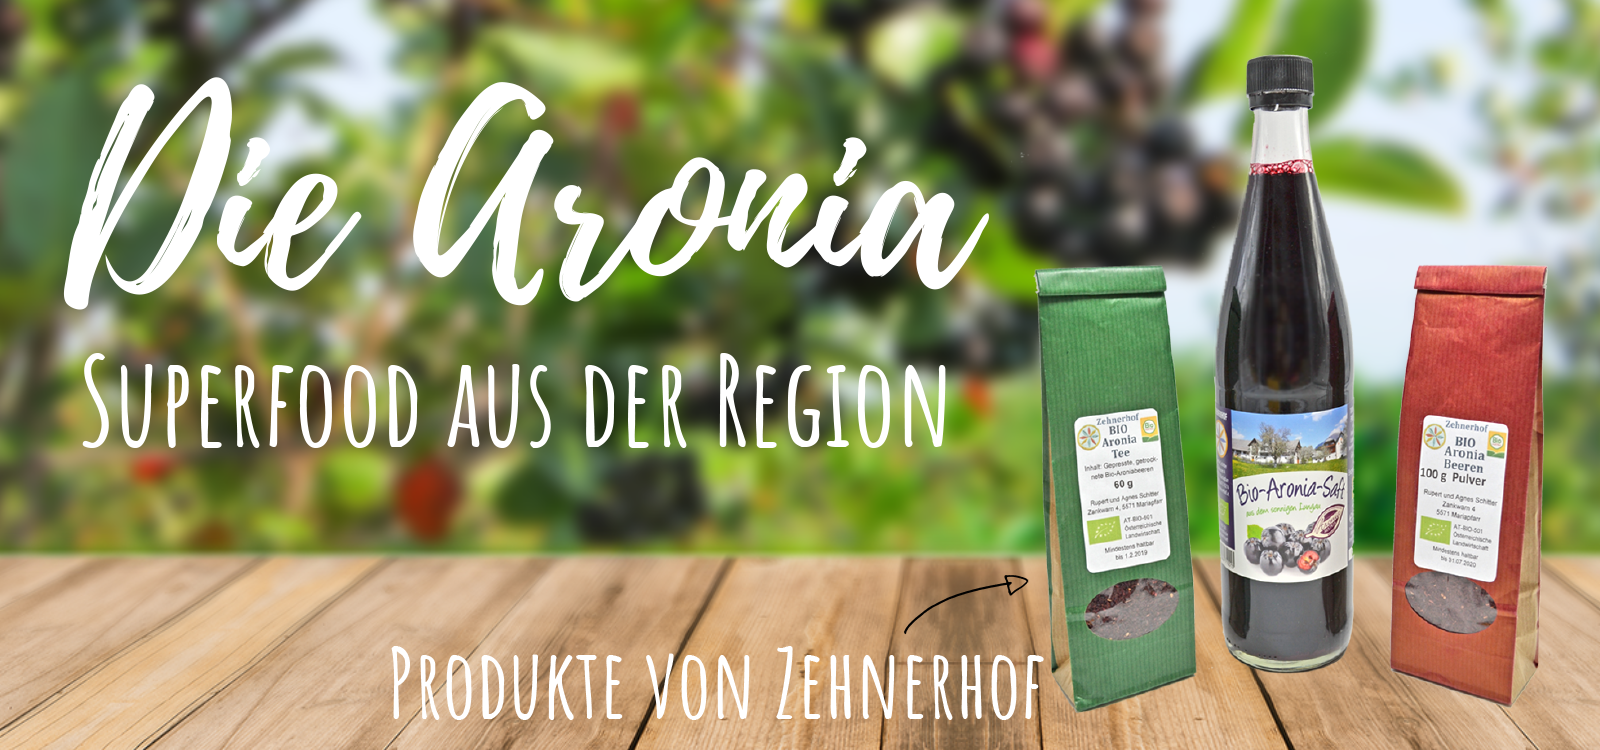 Aronia - Superfood aus der Region